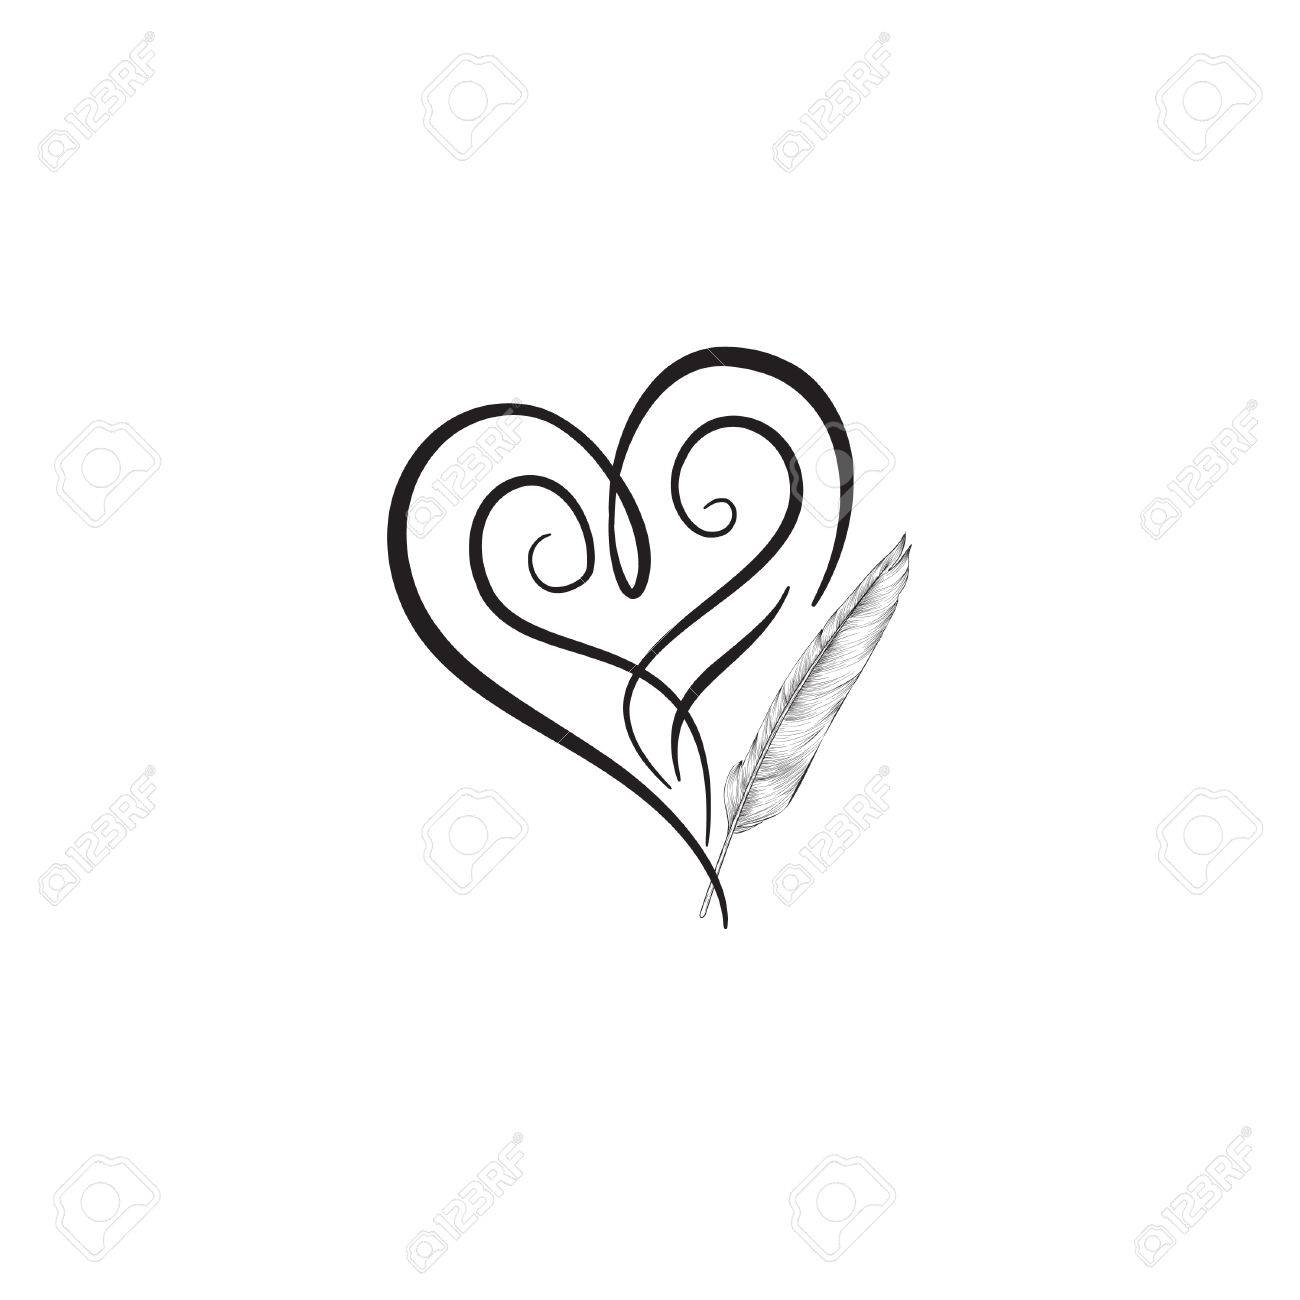 Love Heart Drawn By Feather Pen St Valentine S Day Greeting